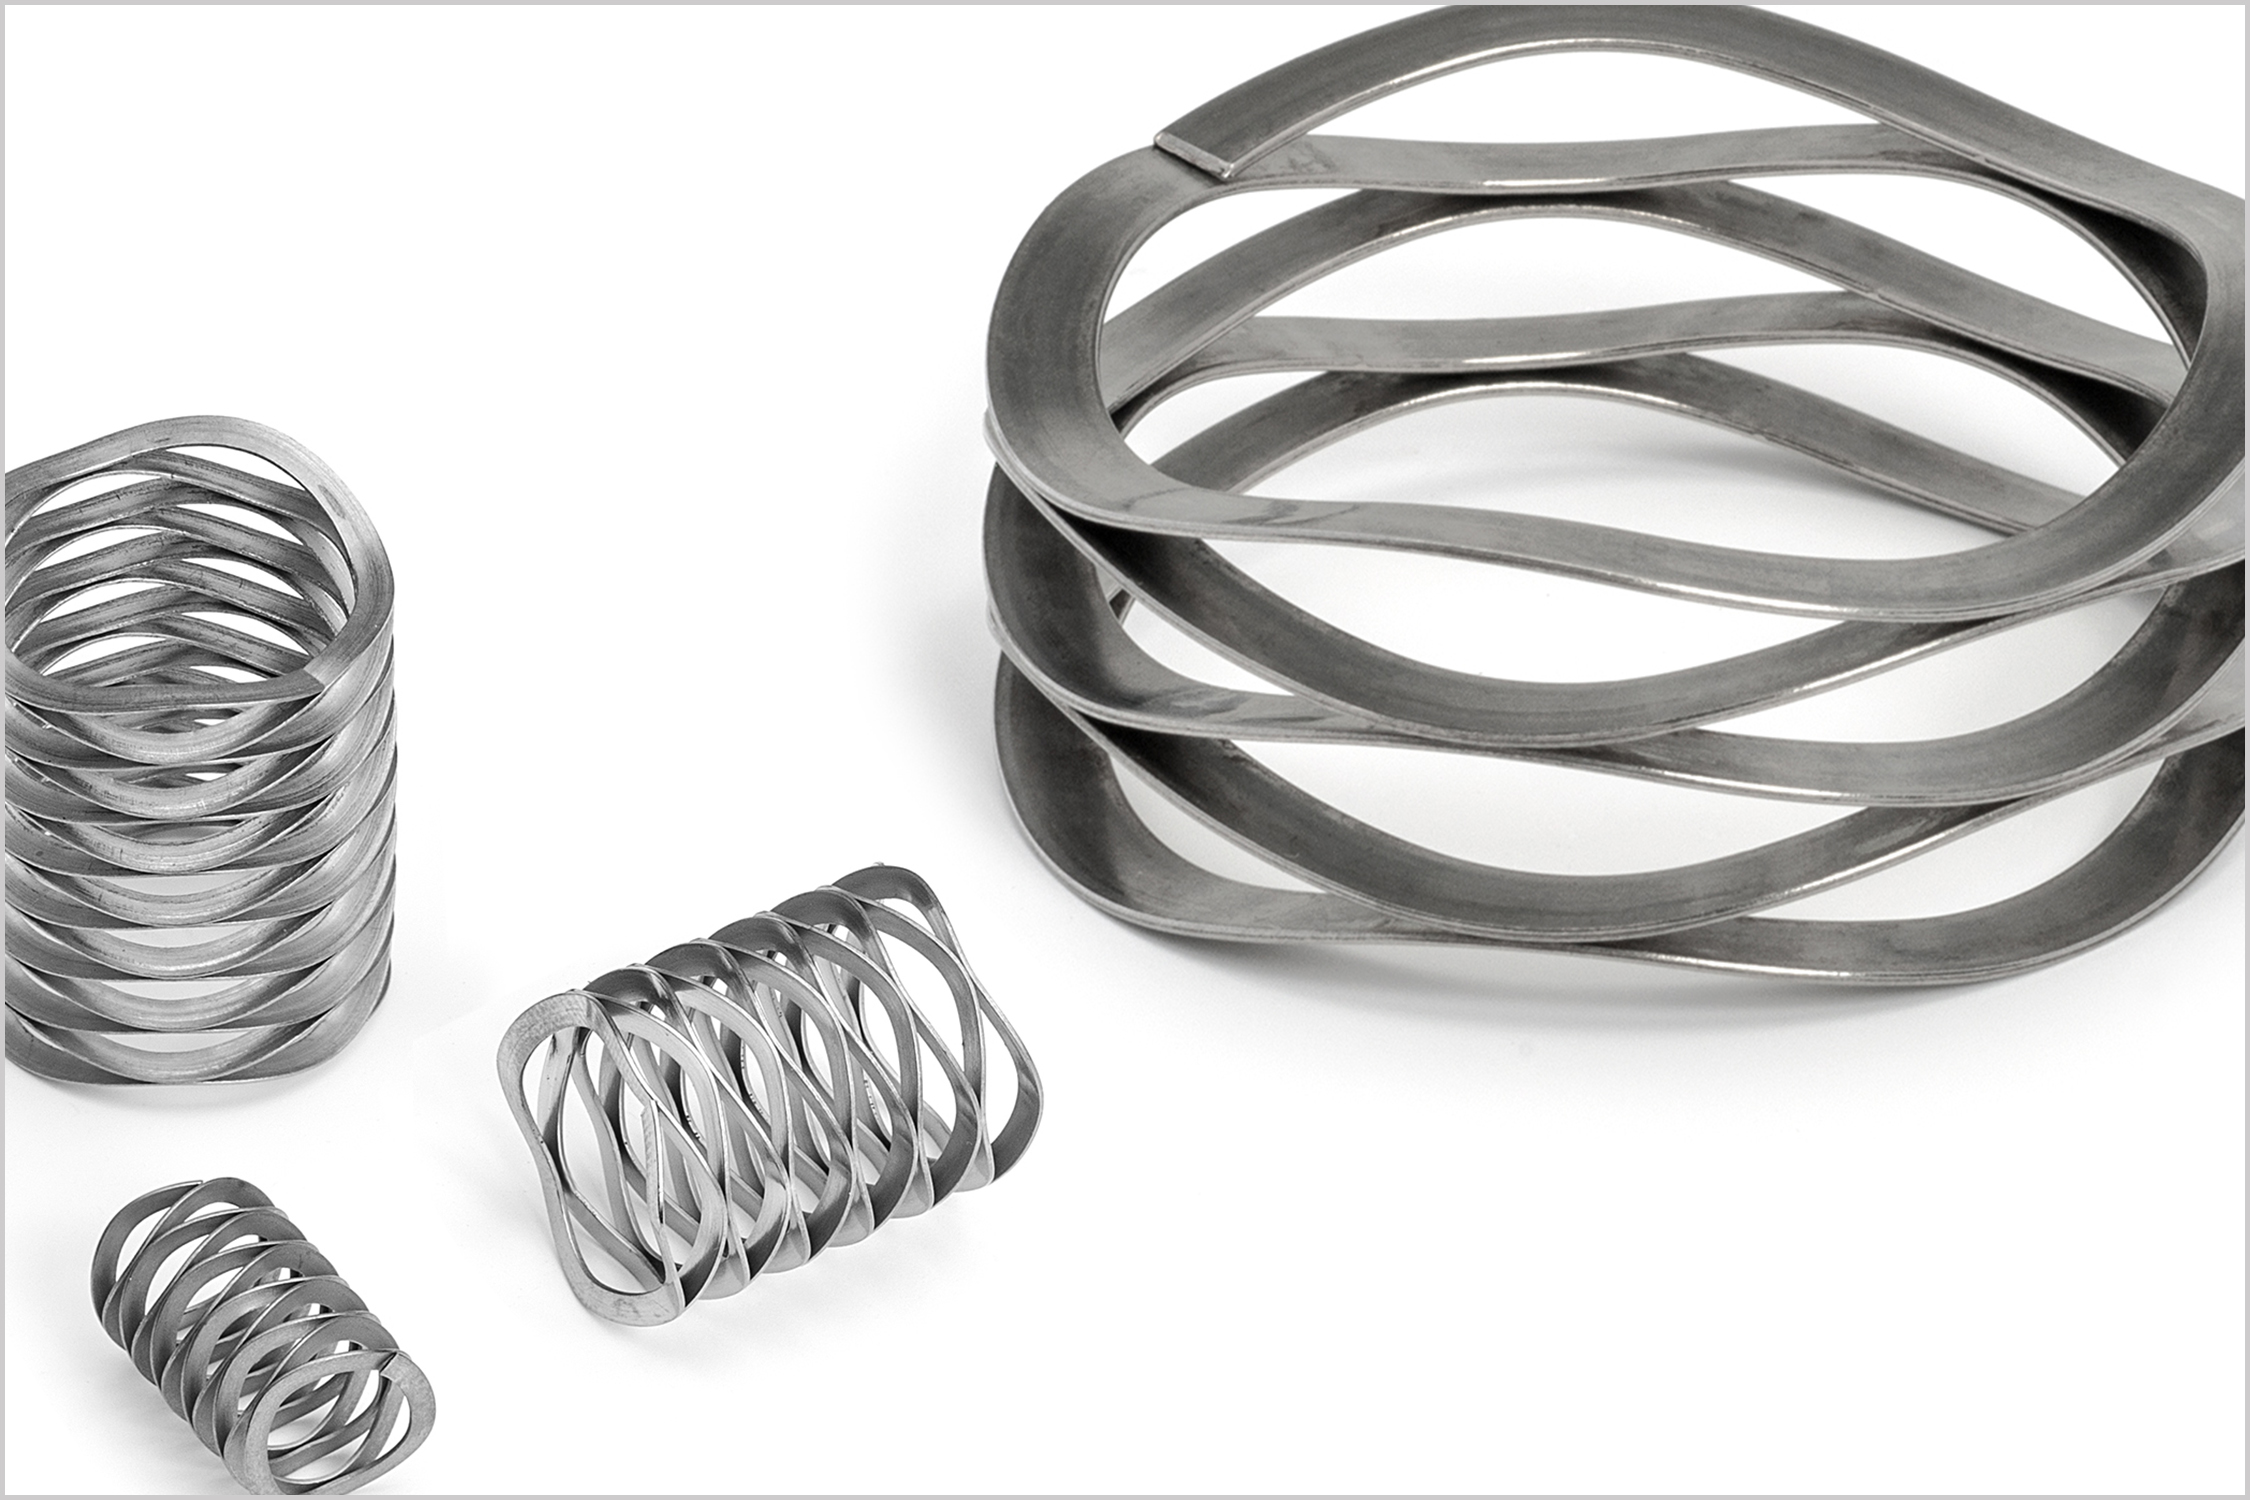 REDUX™ Wave Springs from Lee Spring – an enabling technology